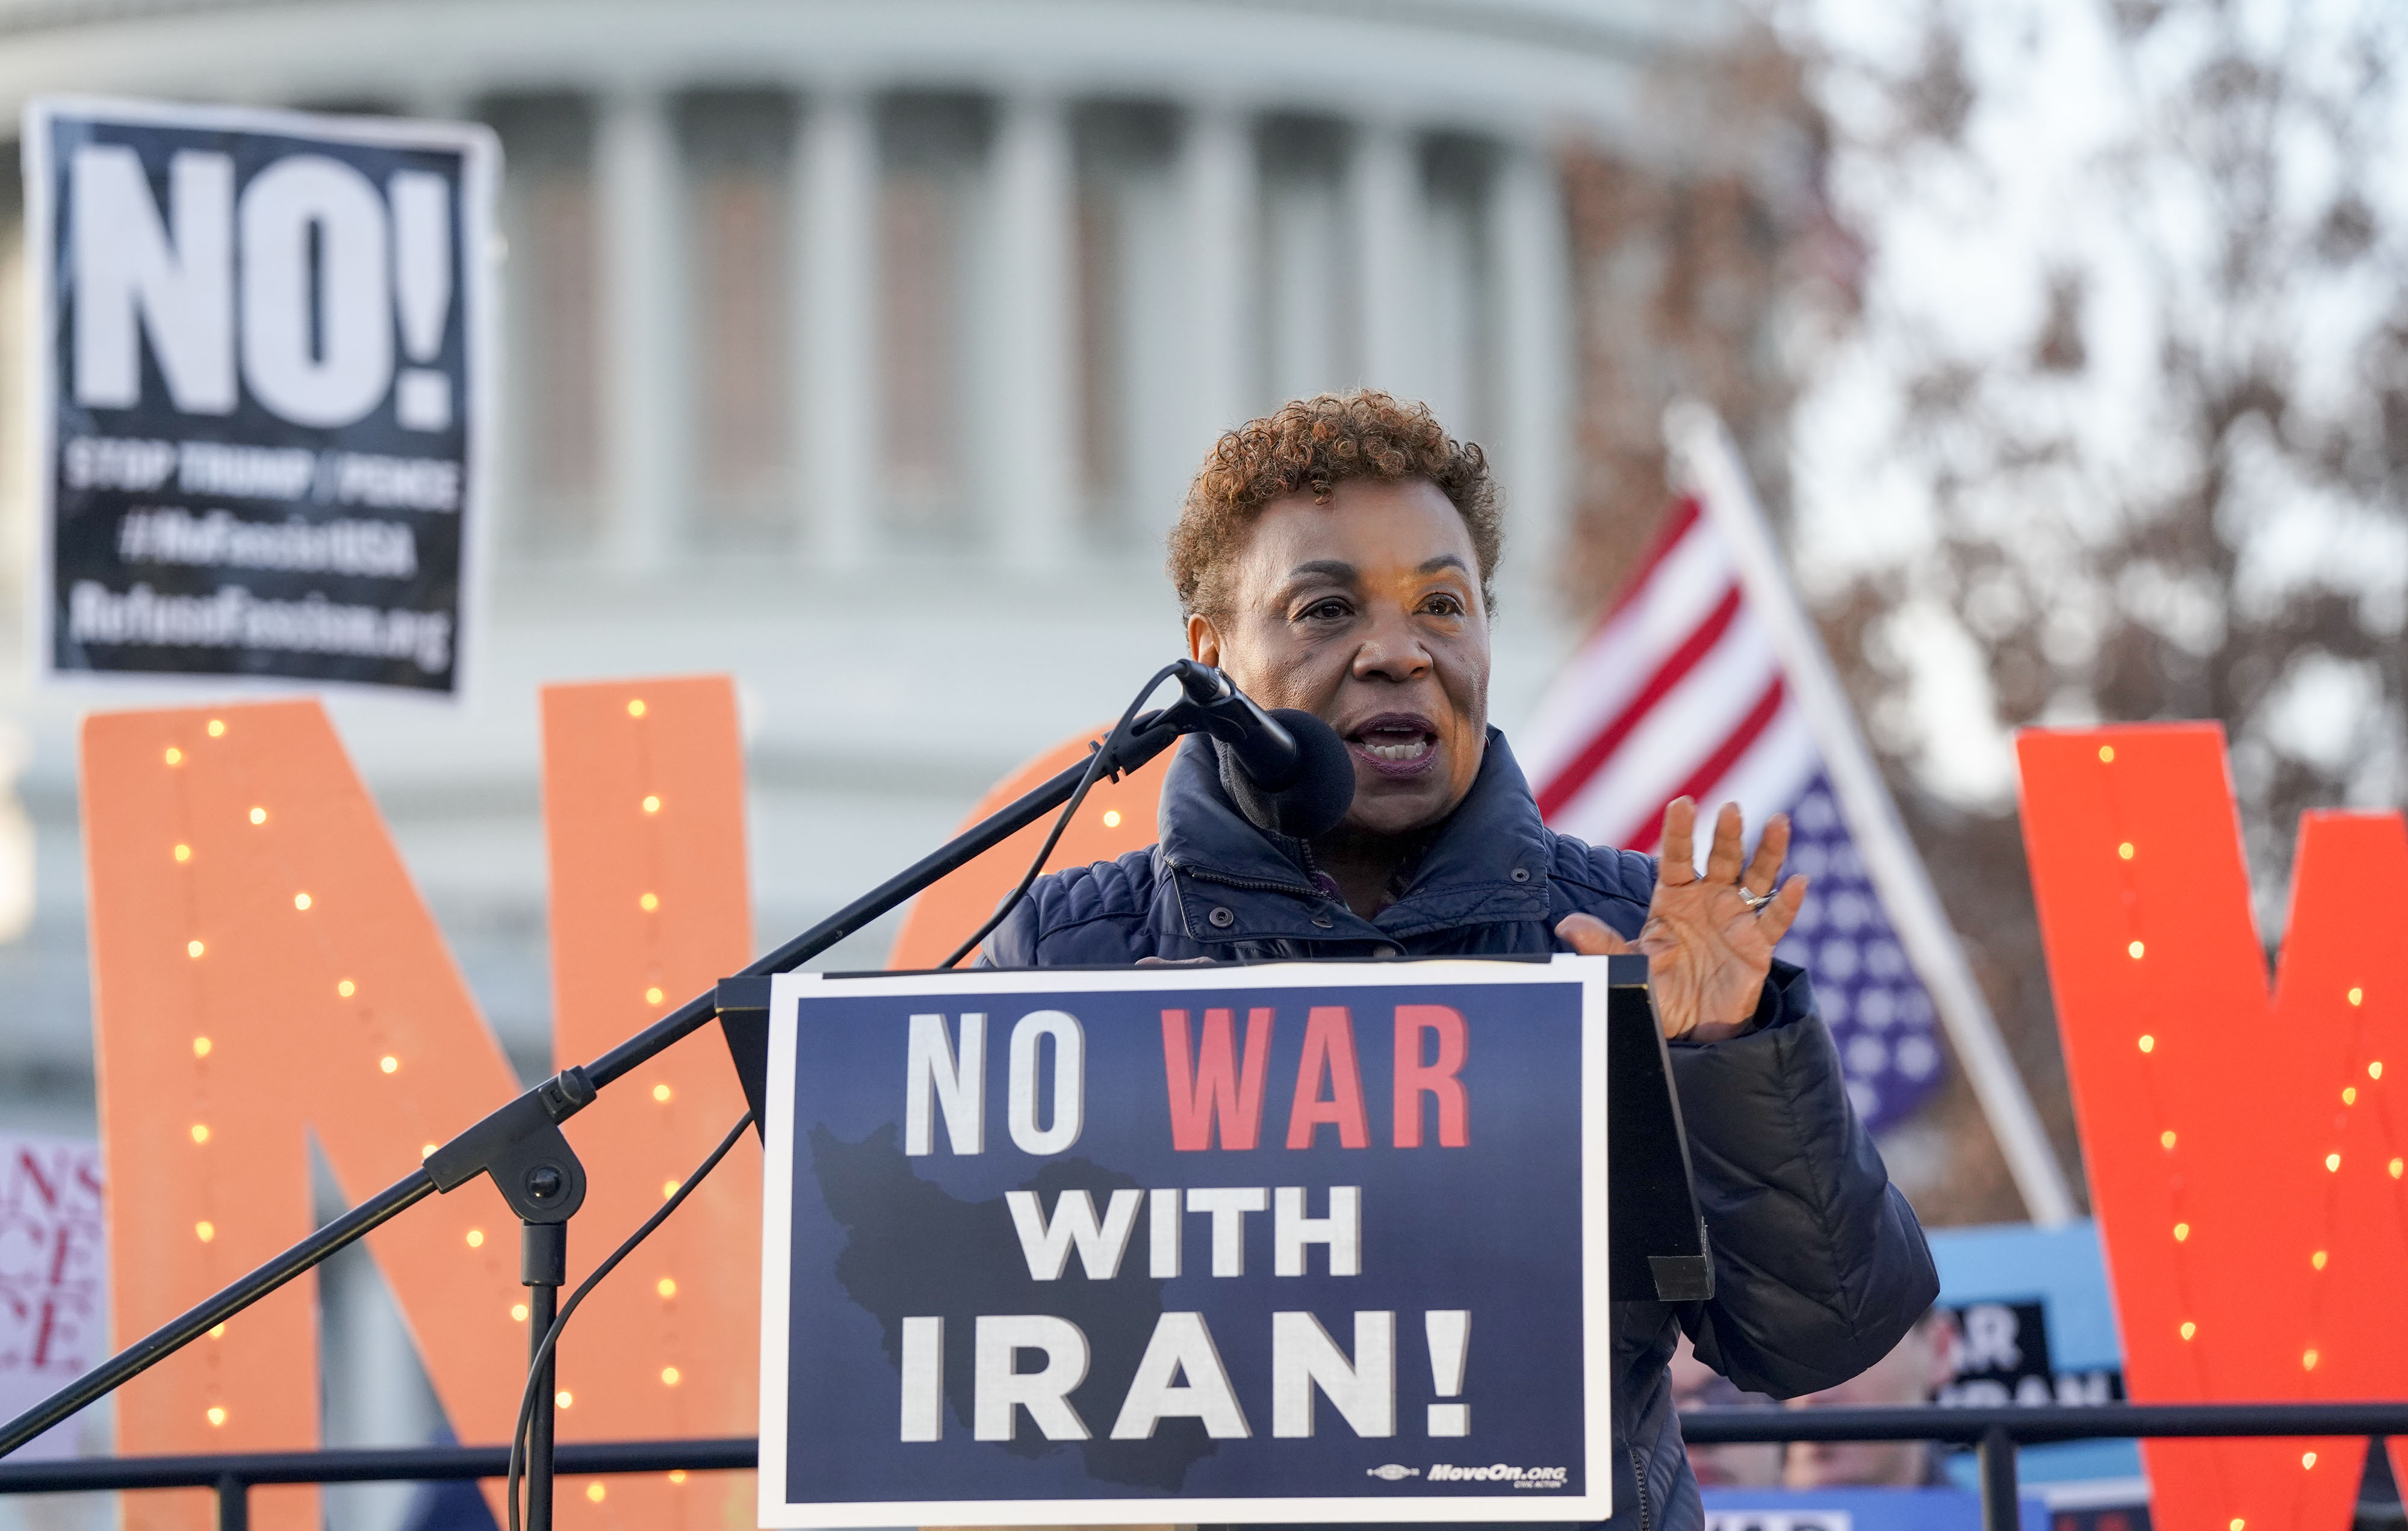 Rep. Barbara Lee, D-Calif., speaks during an antiwar rally at the Capitol on Jan. 9, 2020. (Leigh Vogel/Getty Images for MoveOn.org)